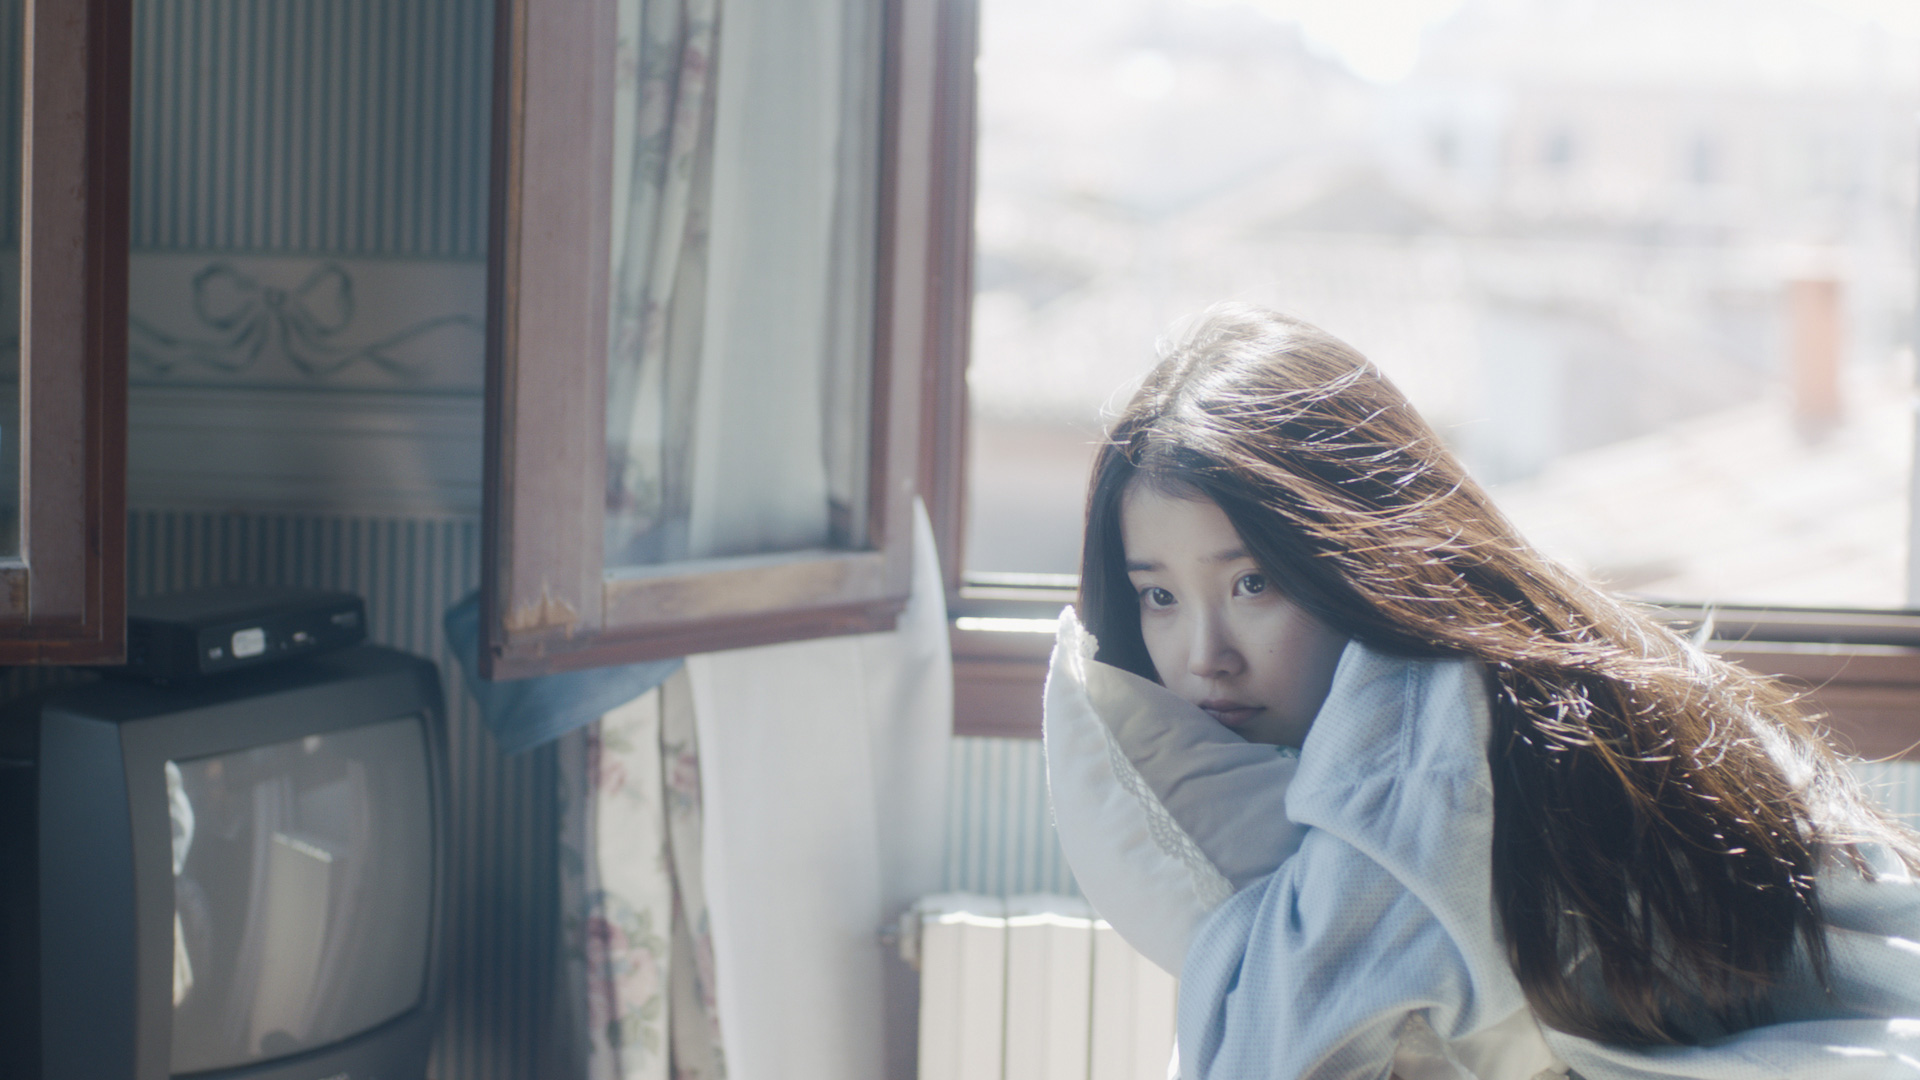 IU HD Wallpaper #2738 - Asiachan KPOP Image Board